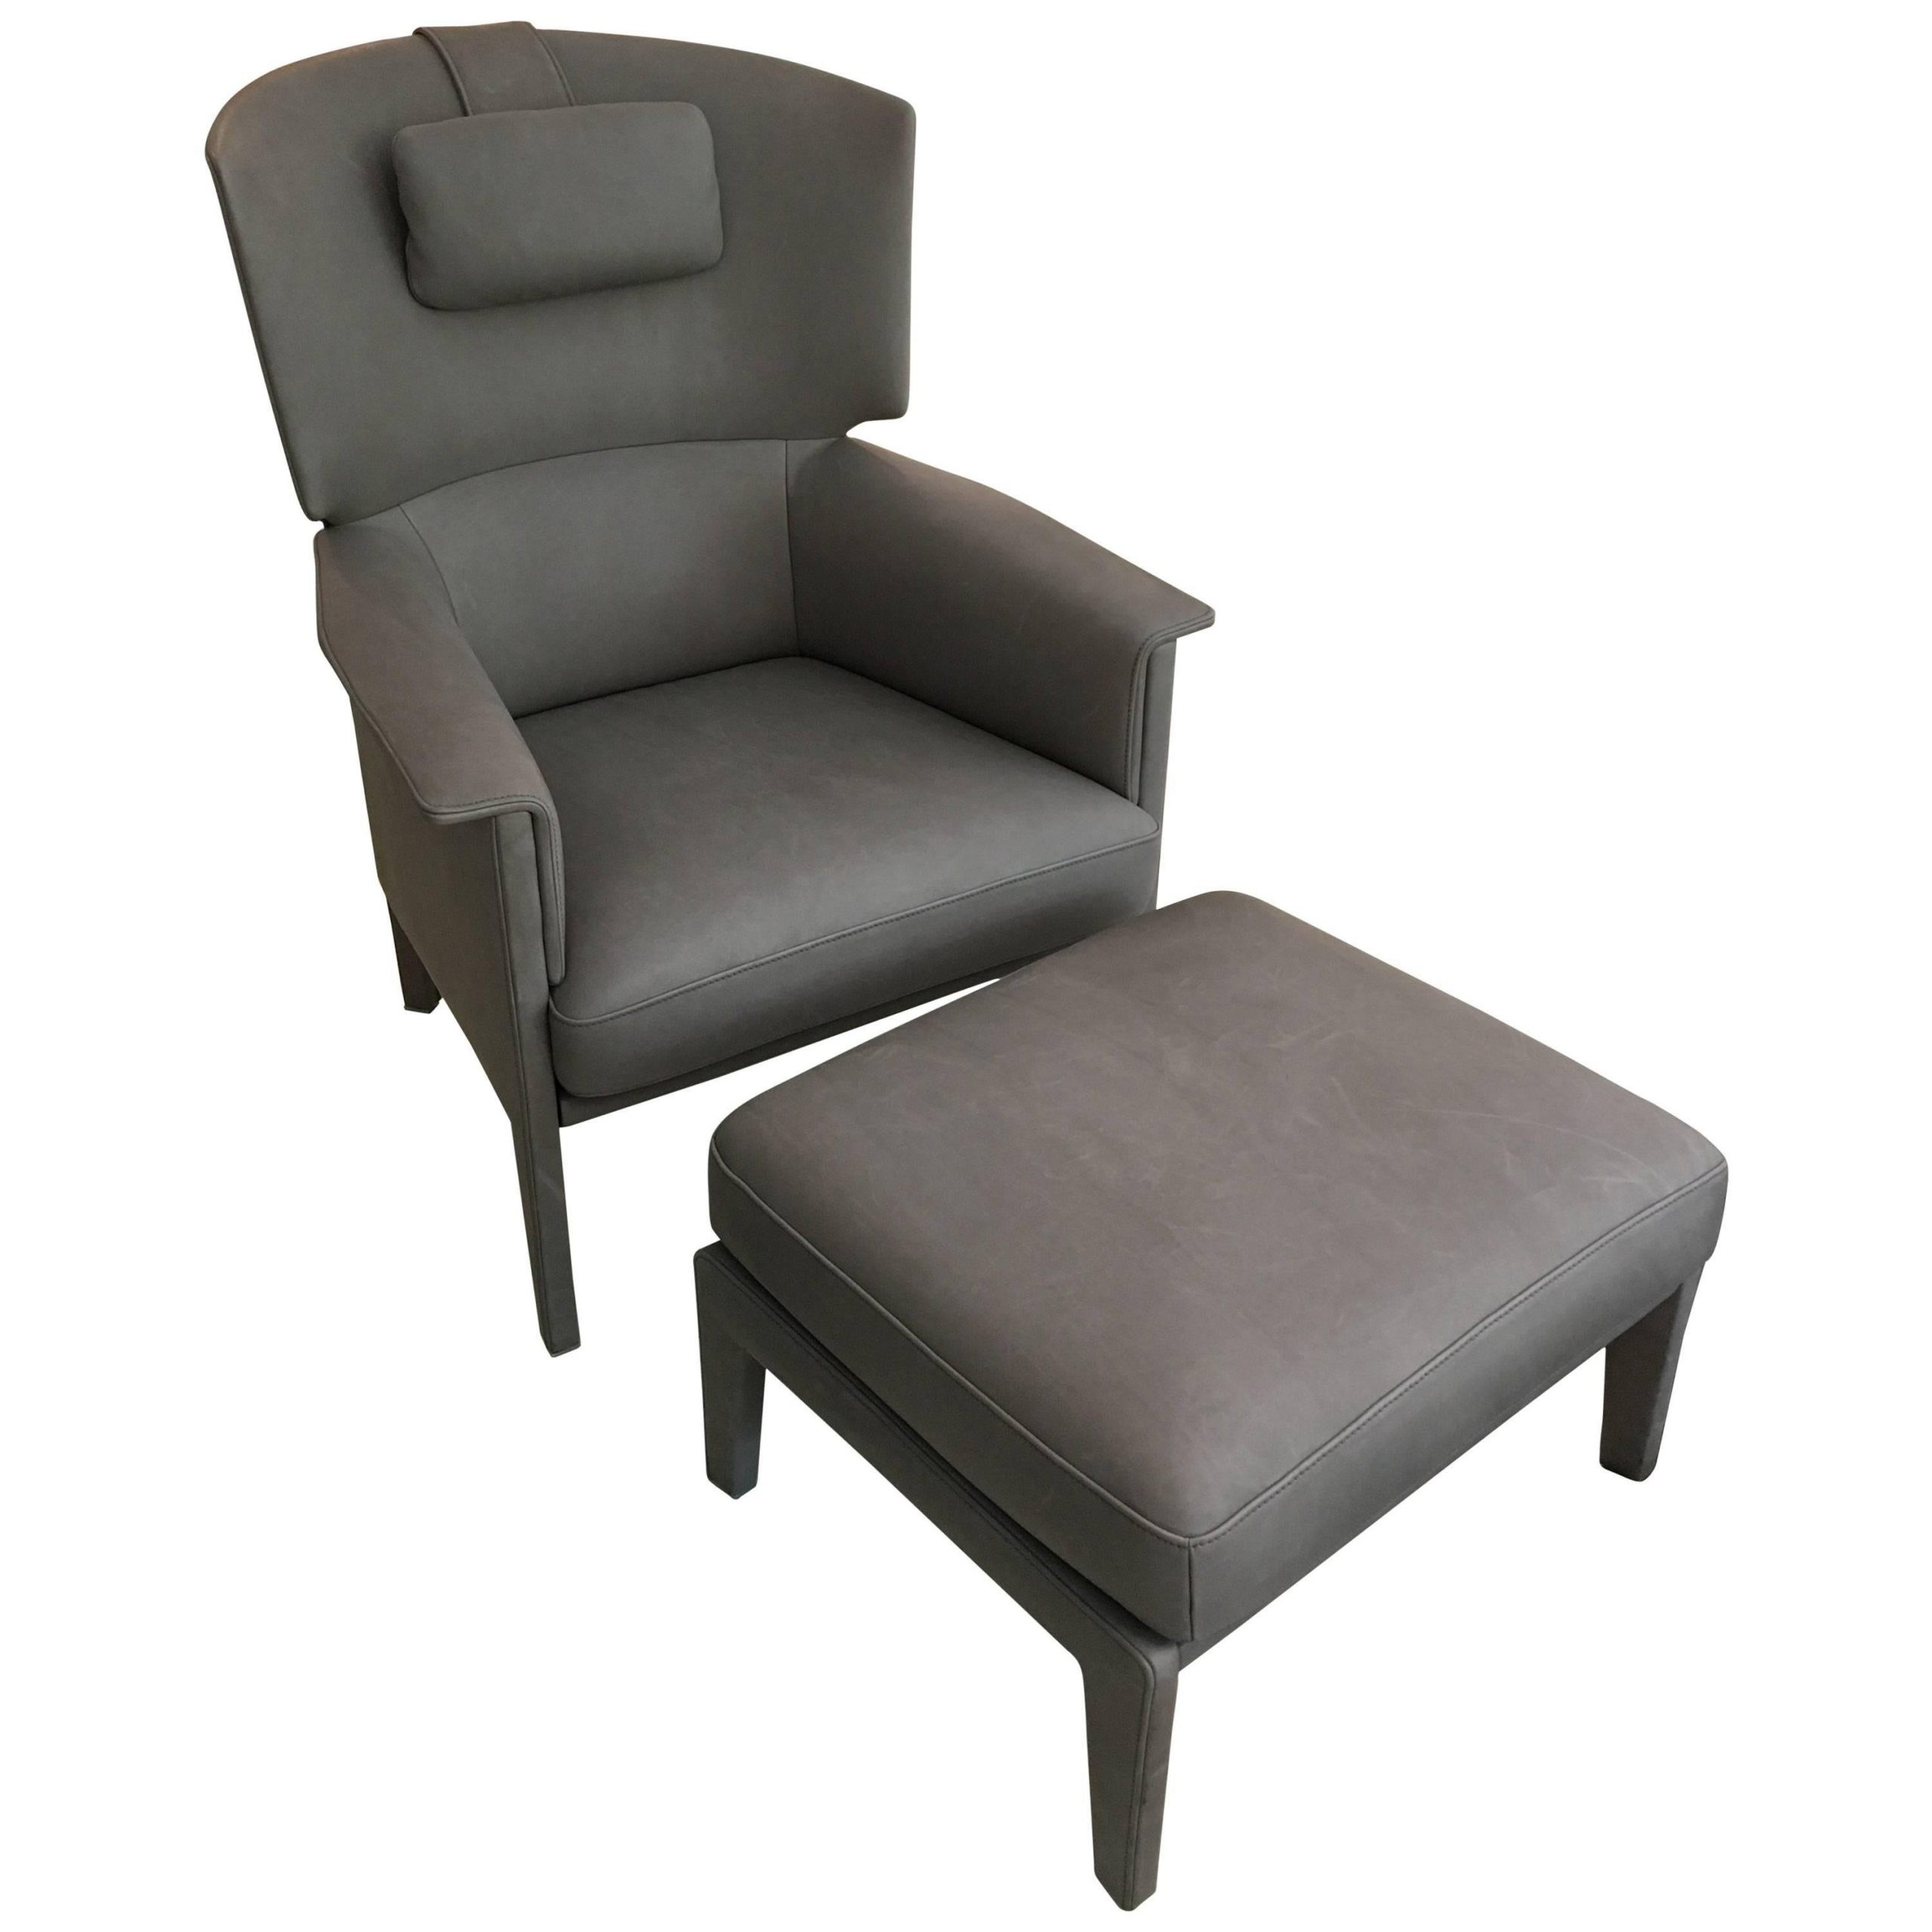 Antique And Vintage Wingback Chairs – 860 For Sale At 1Stdibs Regarding Louisiana Barrel Chairs And Ottoman (View 15 of 15)